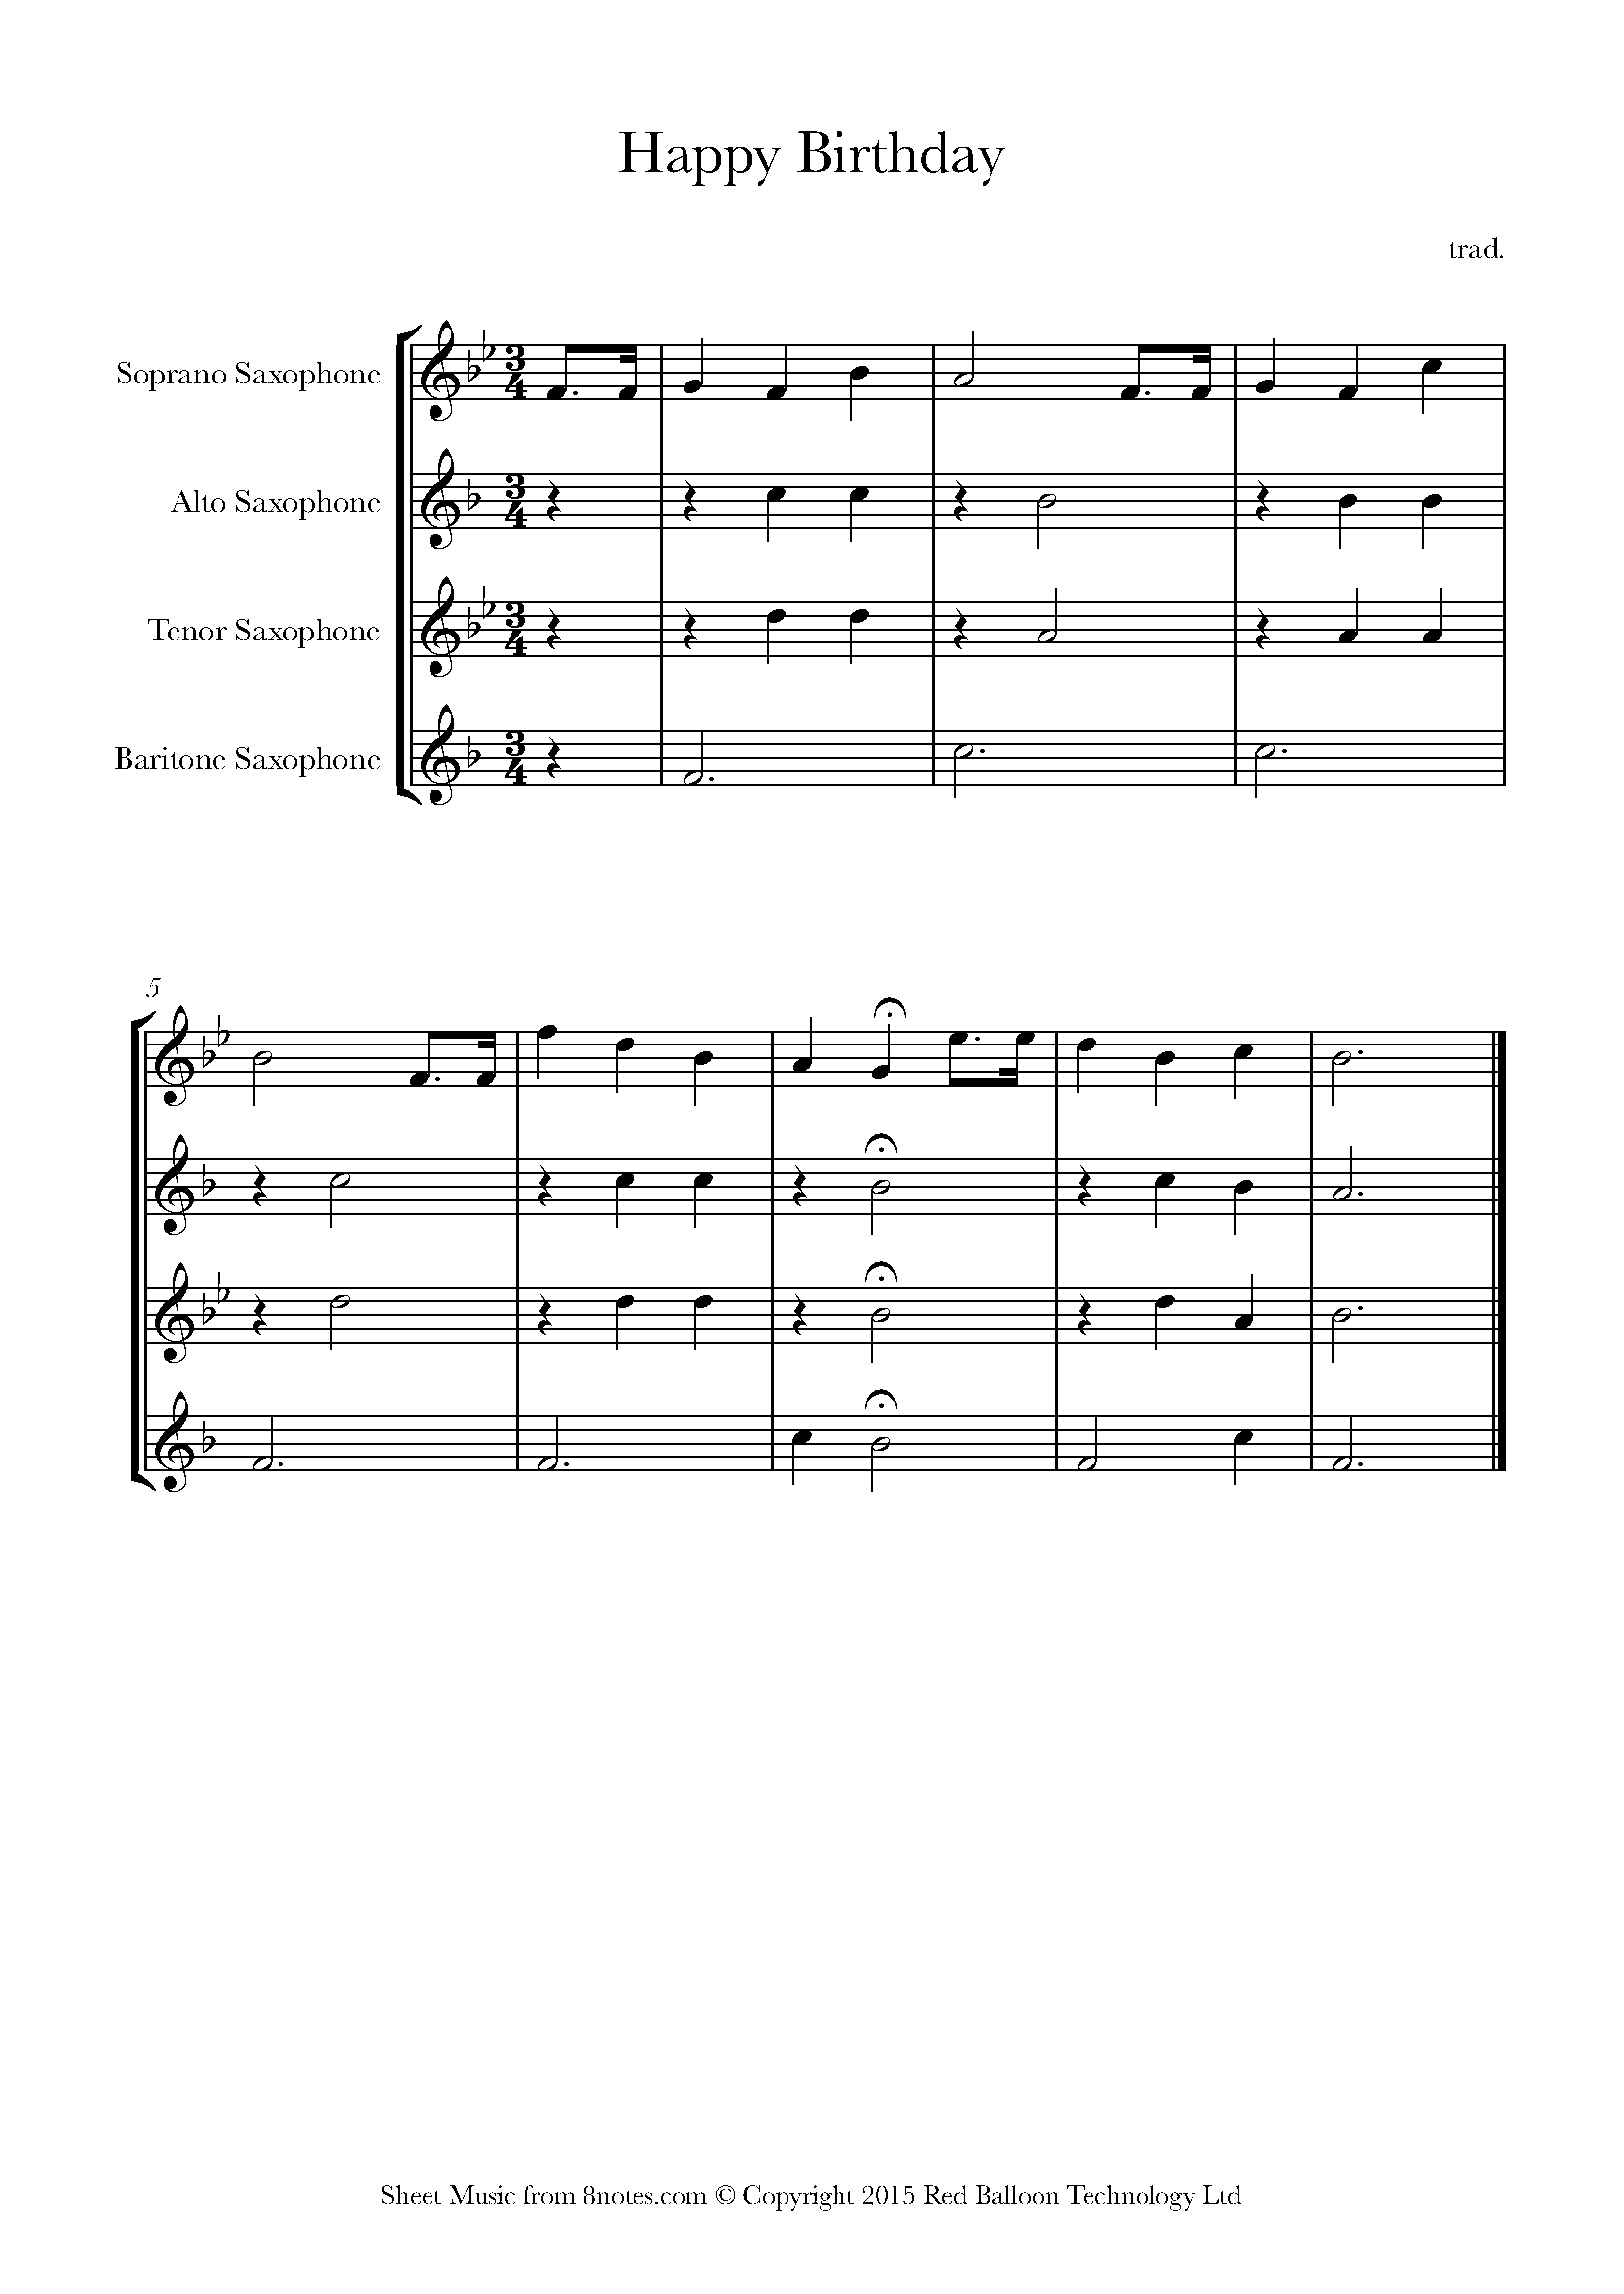 Happy Birthday To You Sheet Music For Saxophone Quartet 8notes Com